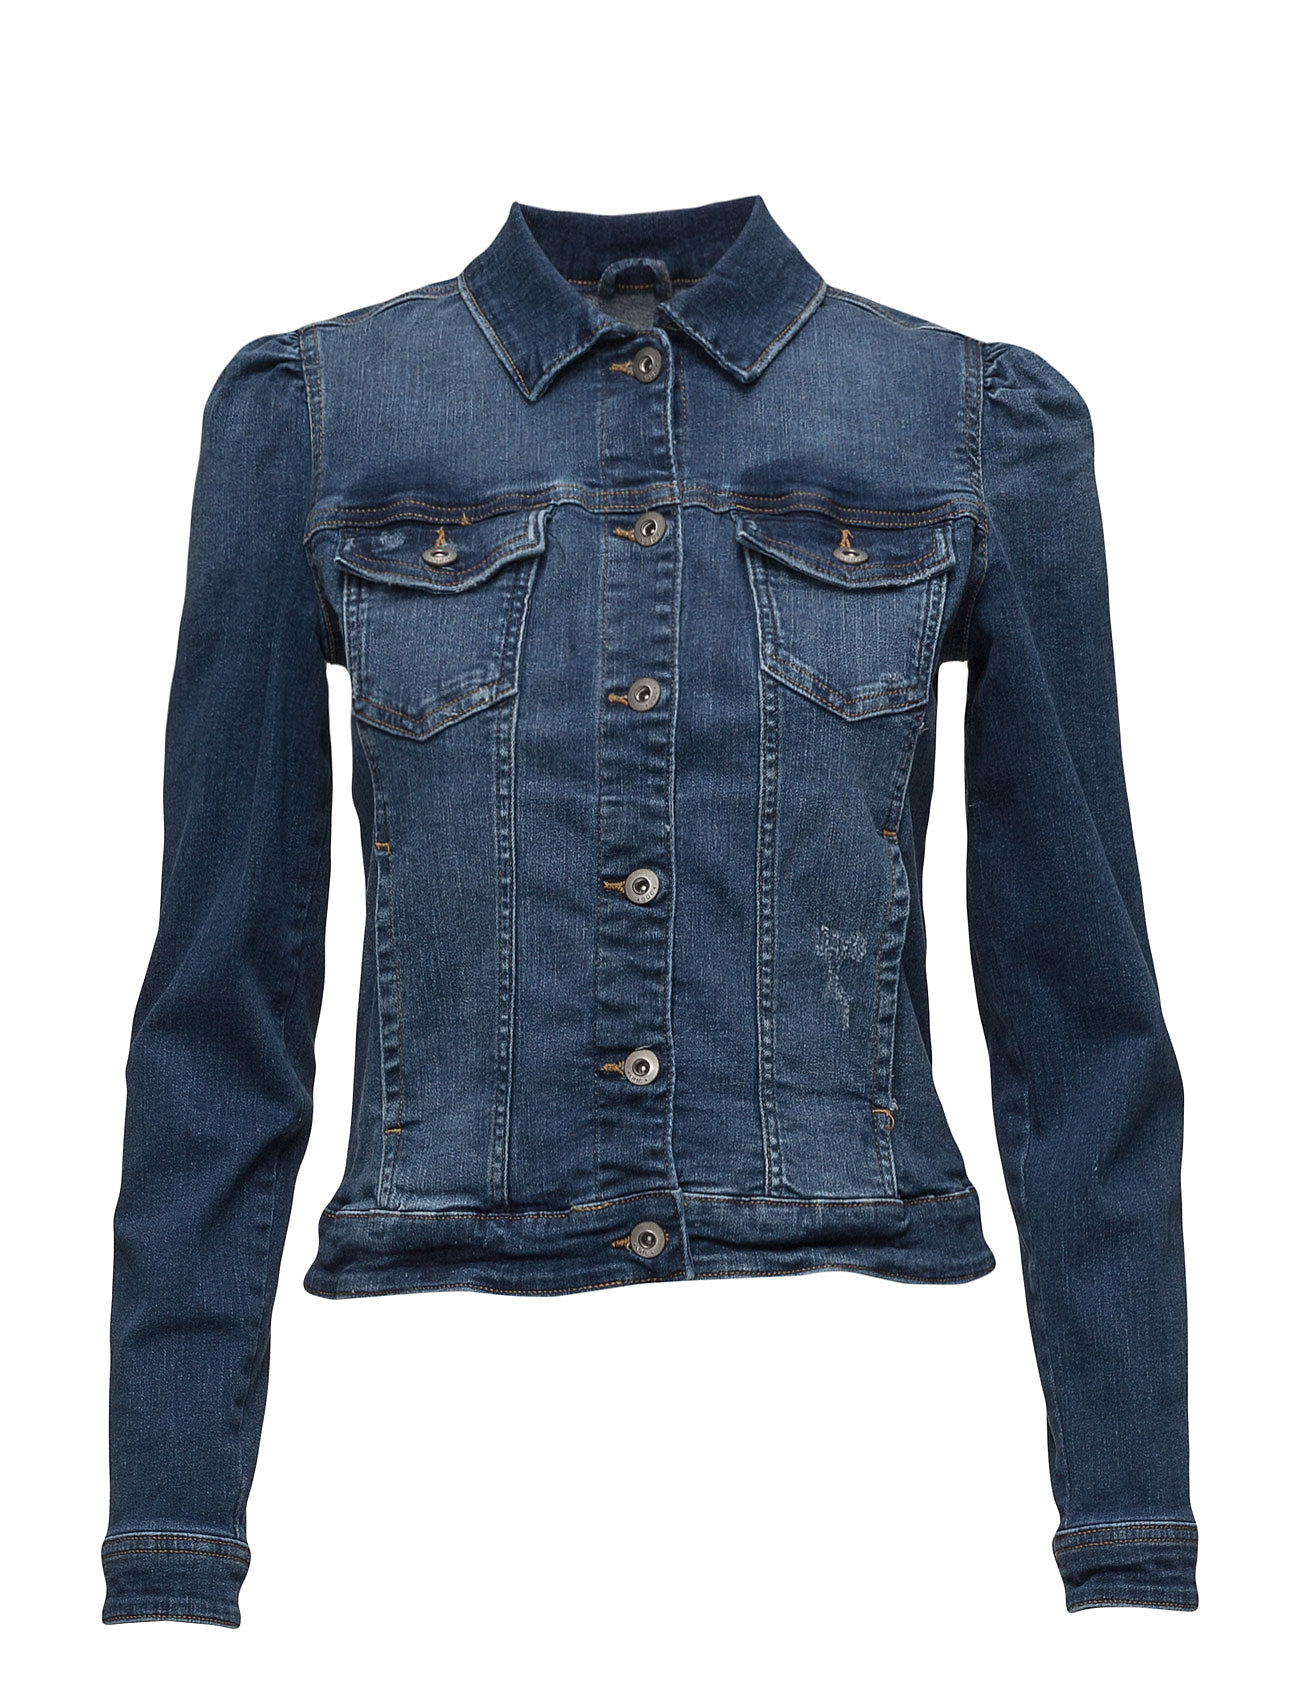 edc by esprit – Jackets indoor denim på boozt.com dk